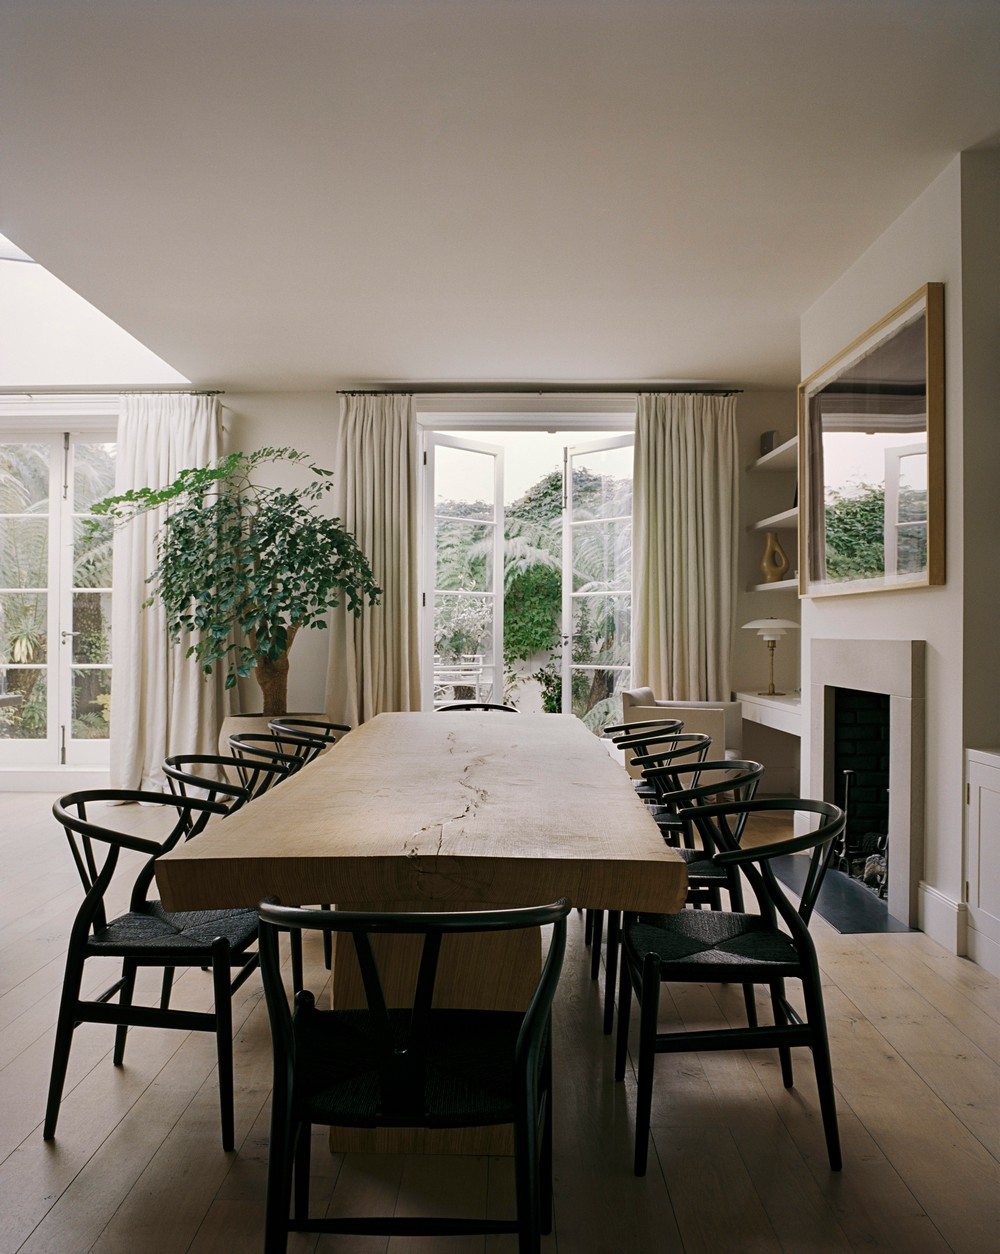 Interior Design See the Uncluttered & Refined Work of Rose Uniacke 4 interior design Interior Design: See the Uncluttered & Refined Work of Rose Uniacke Interior Design See the Uncluttered Refined Work of Rose Uniacke 4